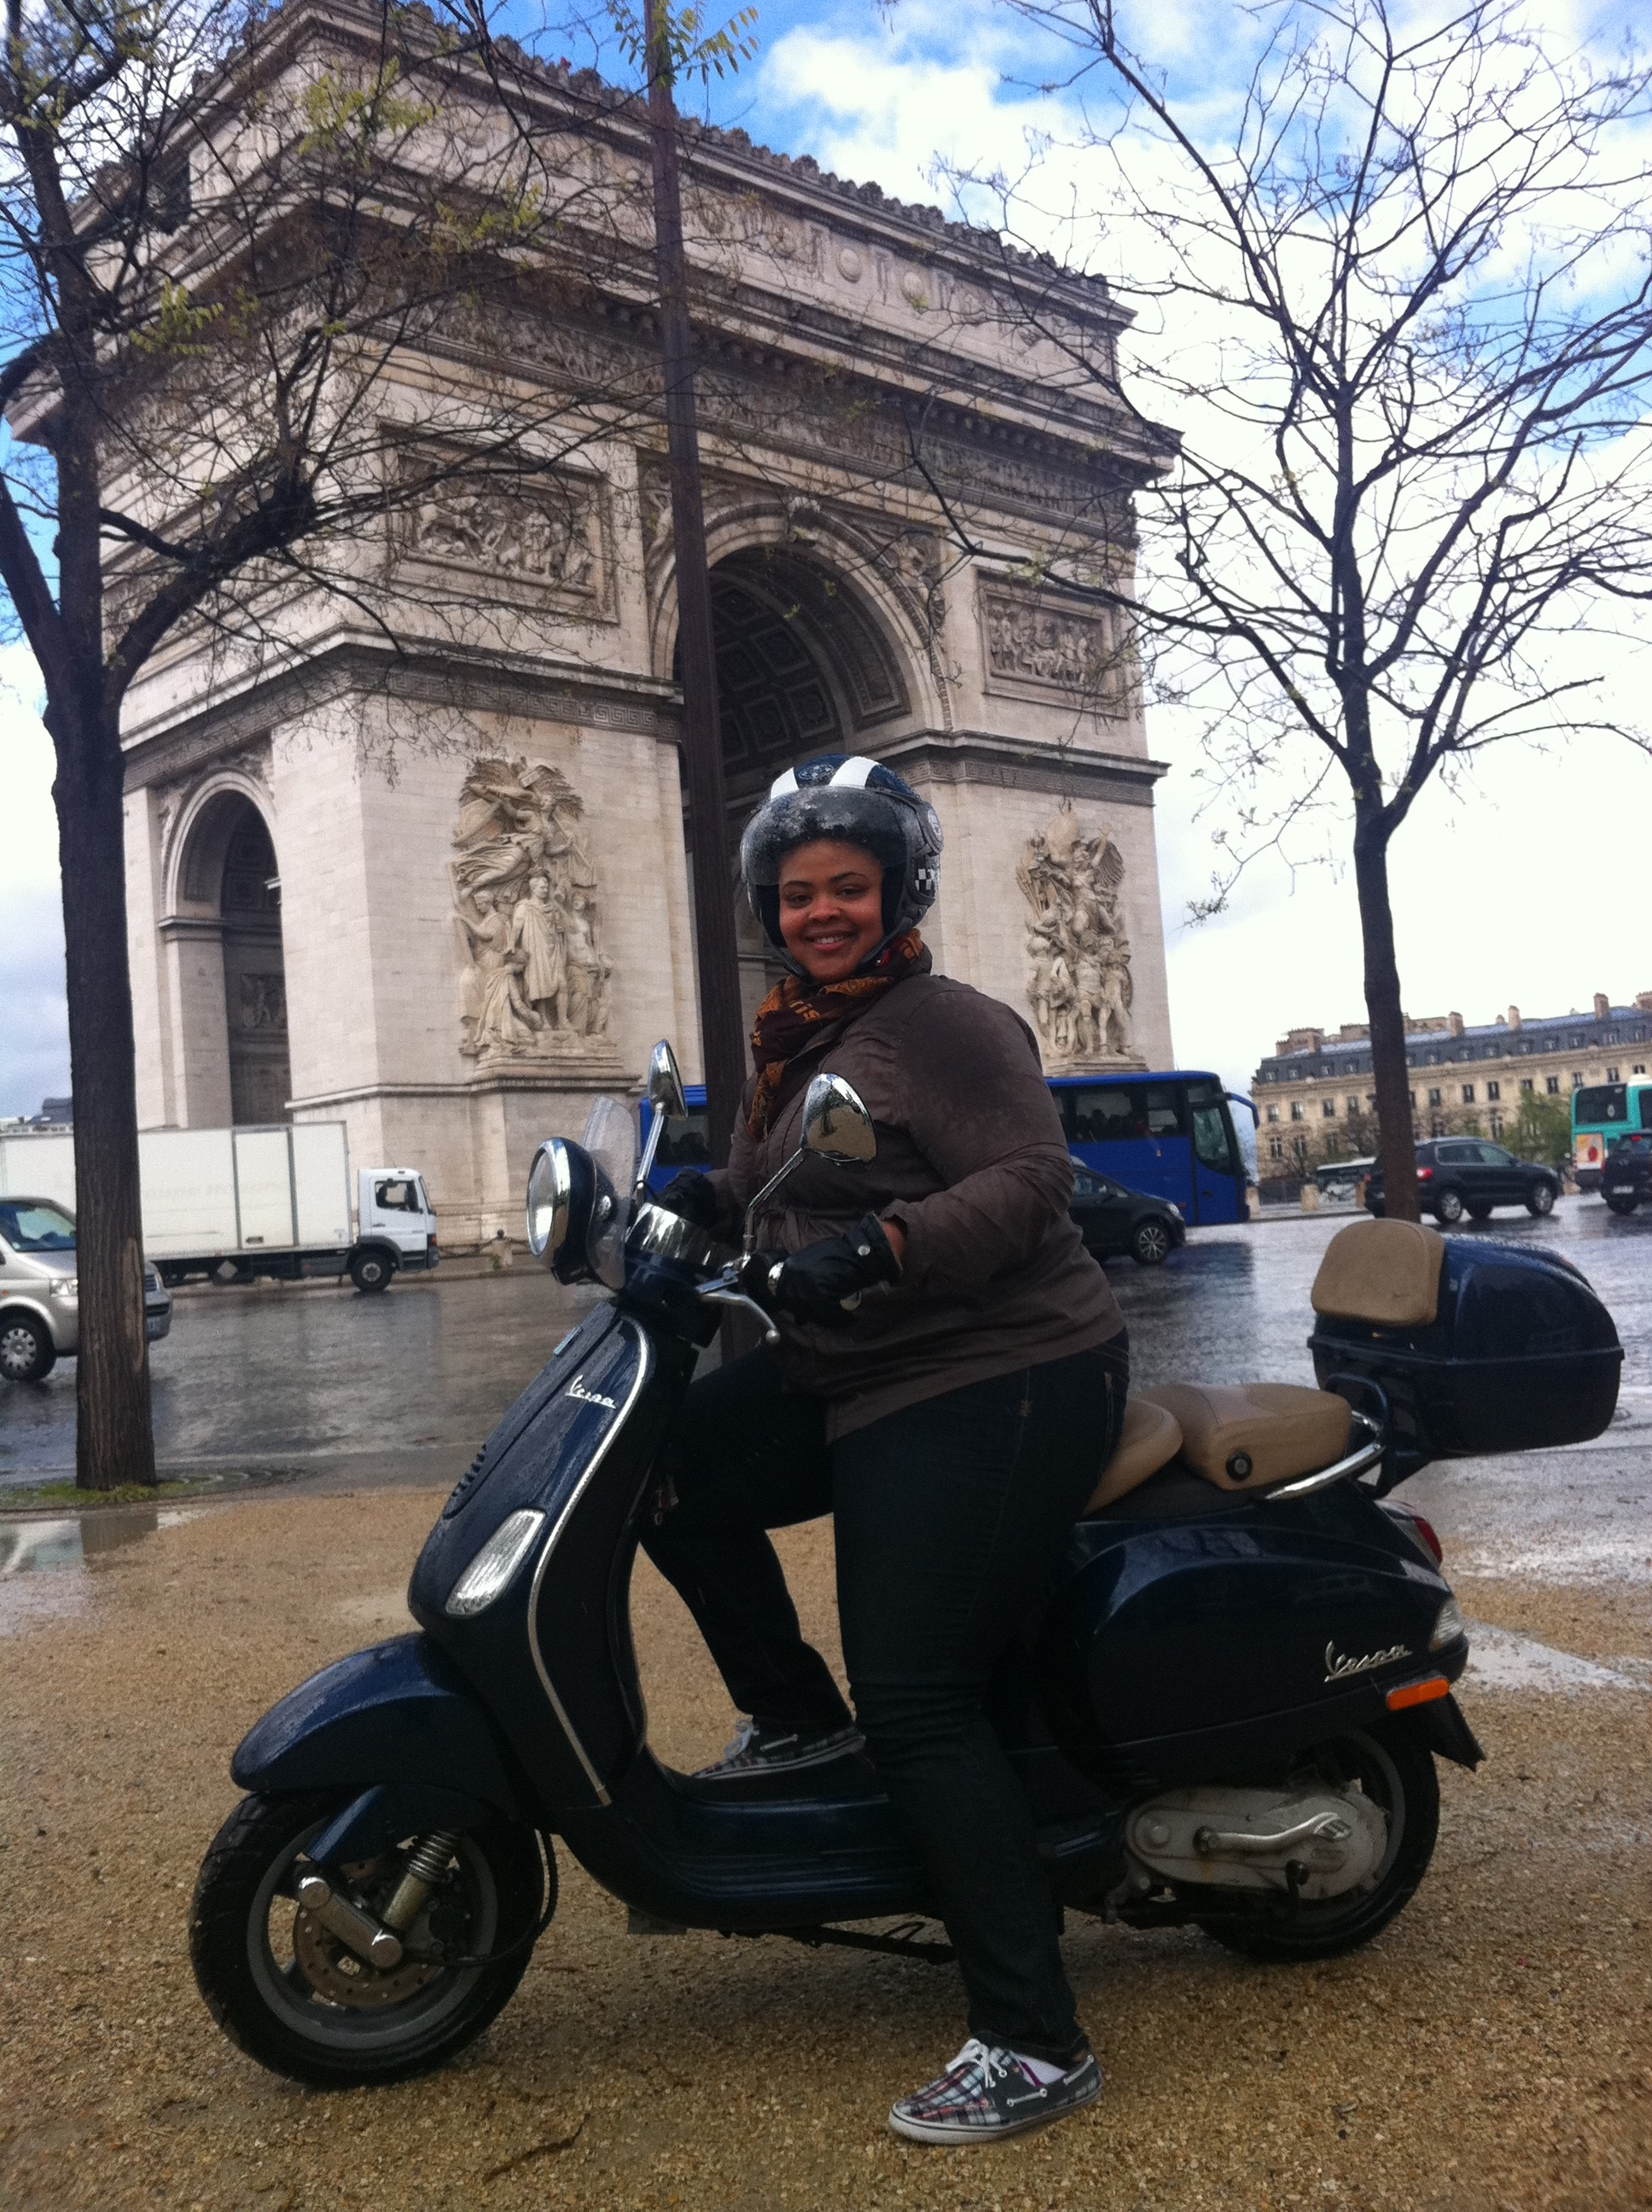 Arc de triomphe by vespa scooter - Paris France